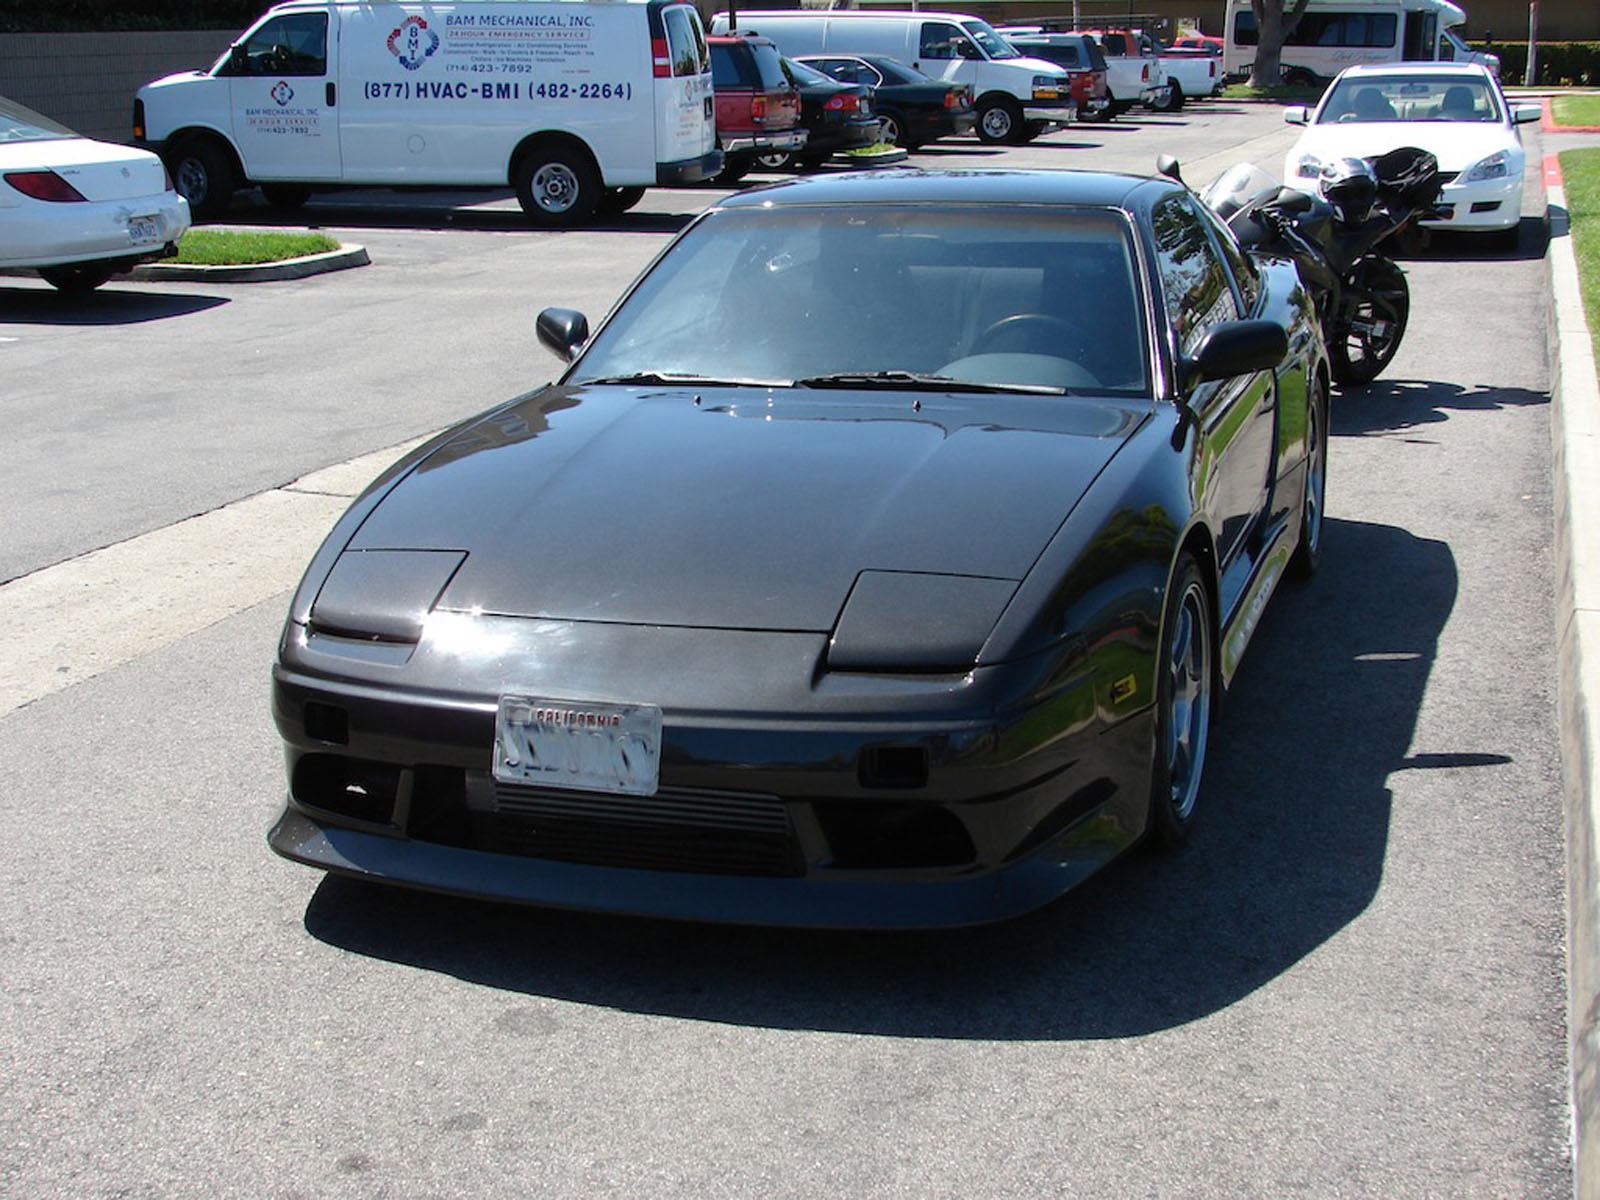 1993 nissan 2jz gte swap 240sx s13 for sale irvine for Nissan 240sx motor for sale